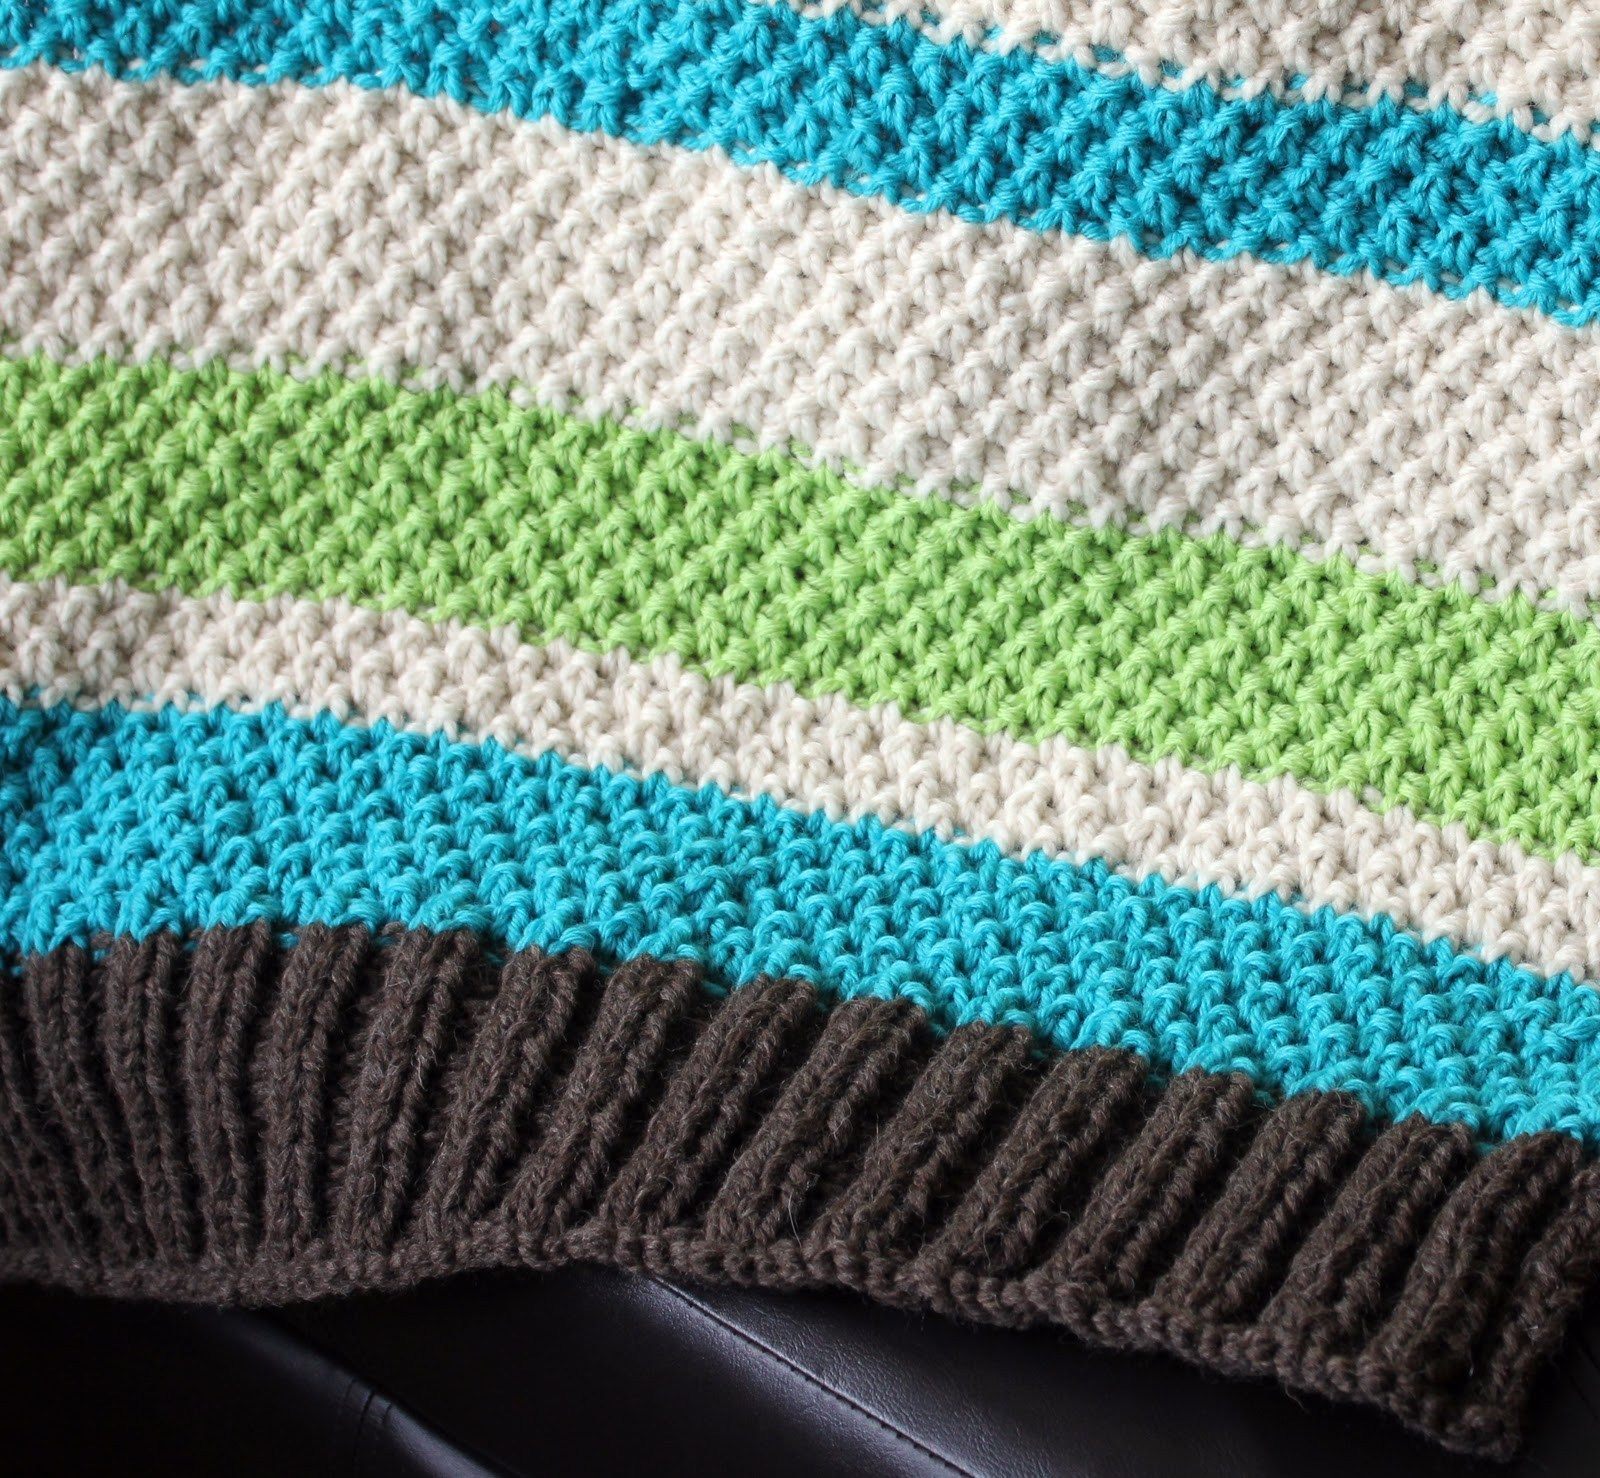 Knitting Patterns For Baby Blankets Easy Easy Ba Blanket Knitting Pattern For Beginners With Free Printable